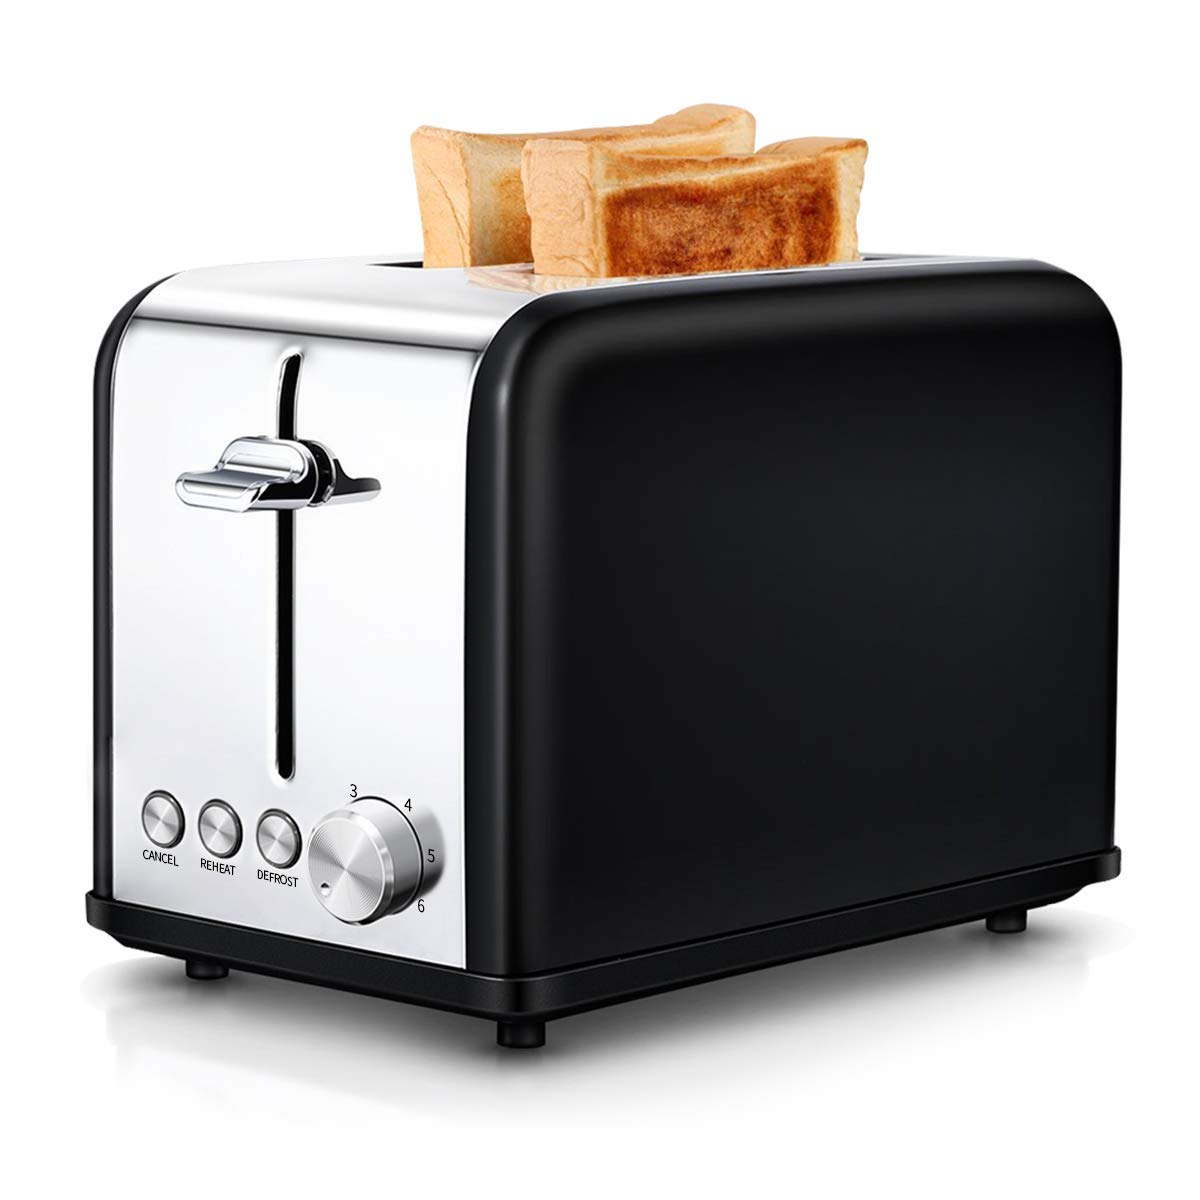 AIVANE Toaster, Toaster 2 Slice with Extra-Wide Slot, Stainless Steel Toaster with 6 Toasting Settings for Fast and Even Toasting, Removable Crumb Tray, 815W, Black